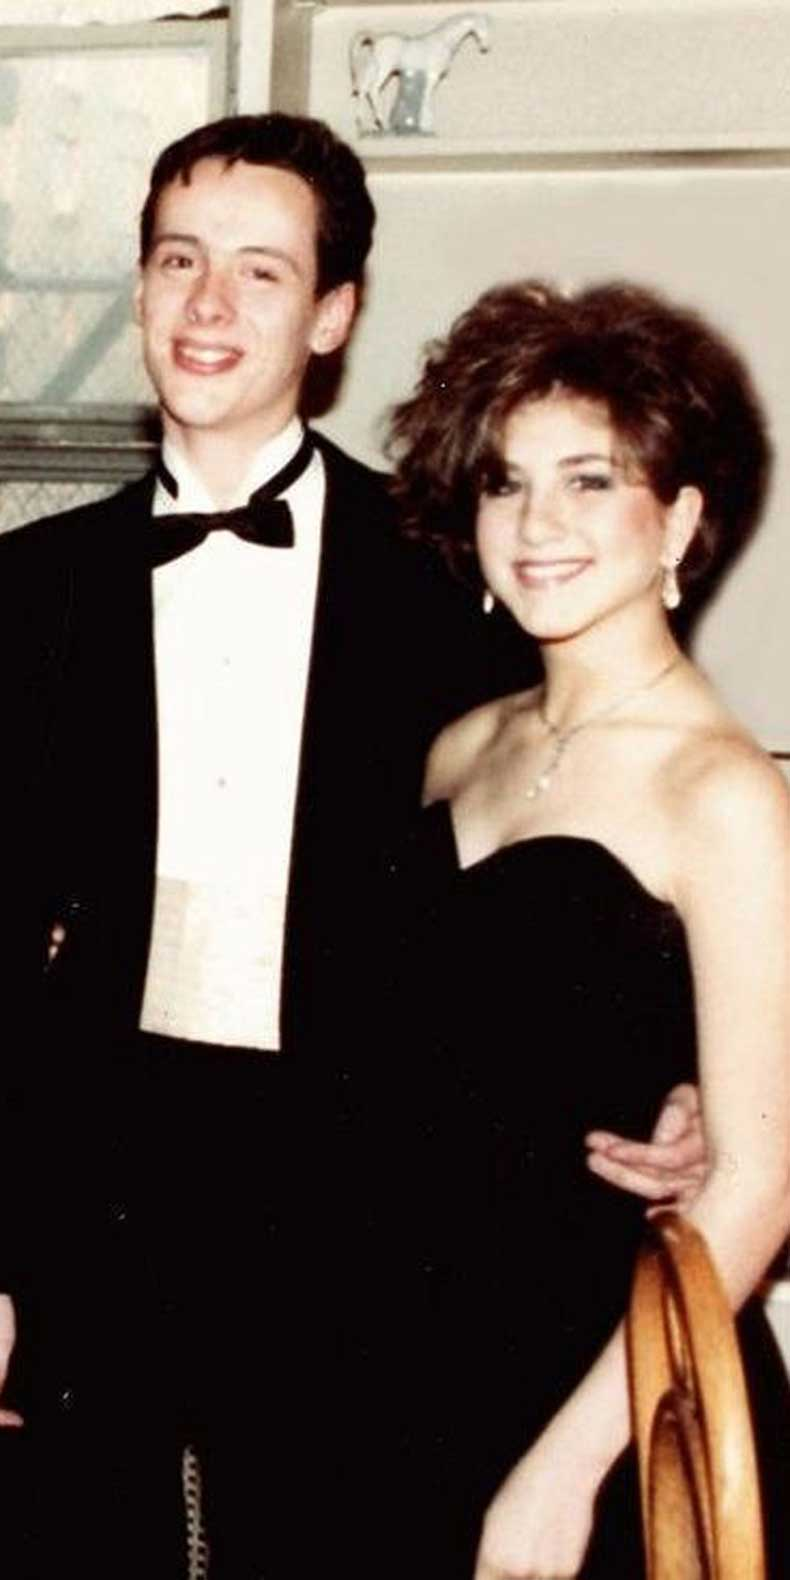 Jennifer Aniston In Her Prom Dress-15 Rare Unseen Celebrity Prom Photos